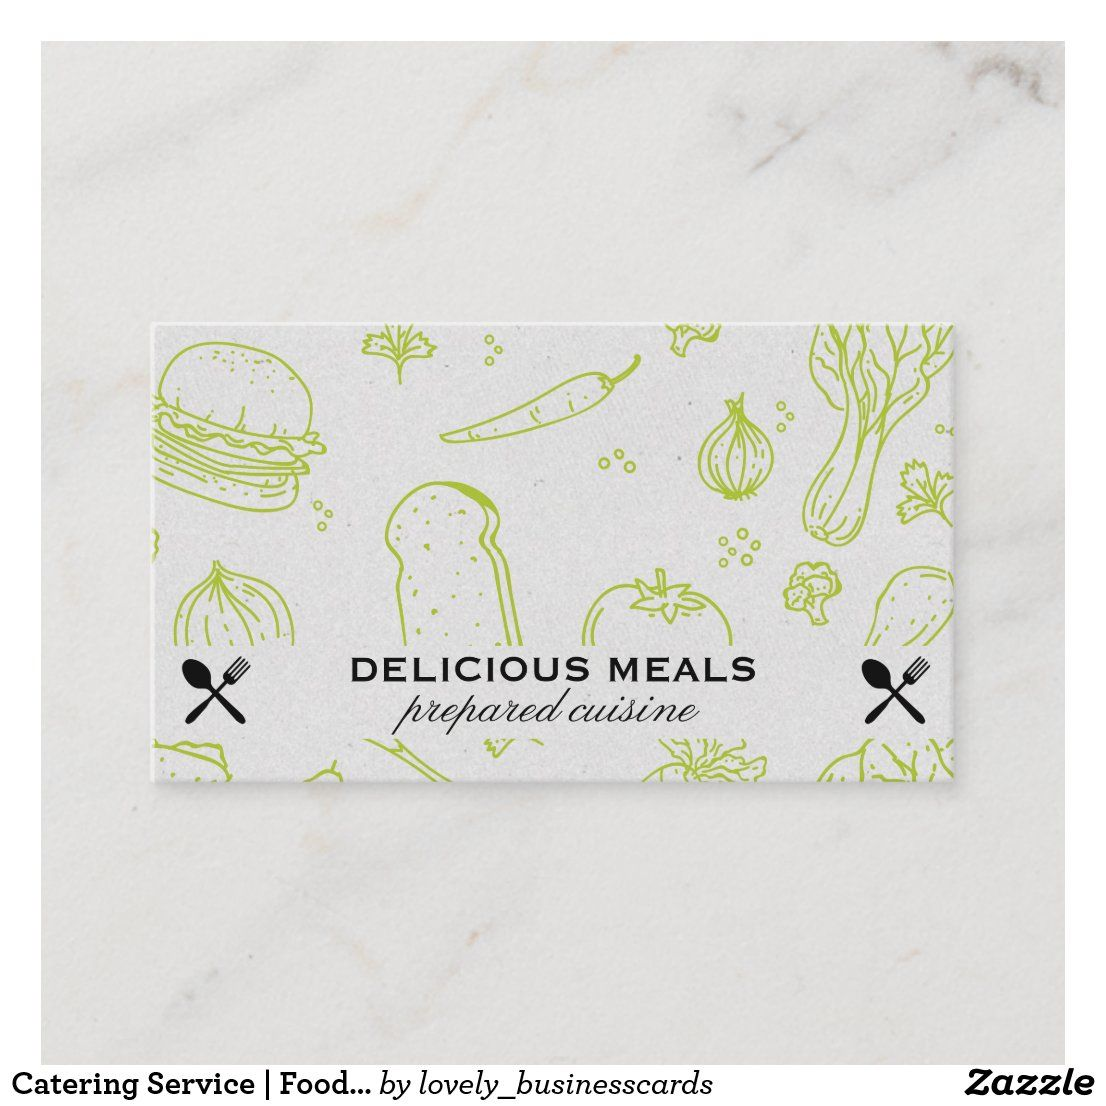 Catering Service | Food Pattern Business Card | Zazzle.com